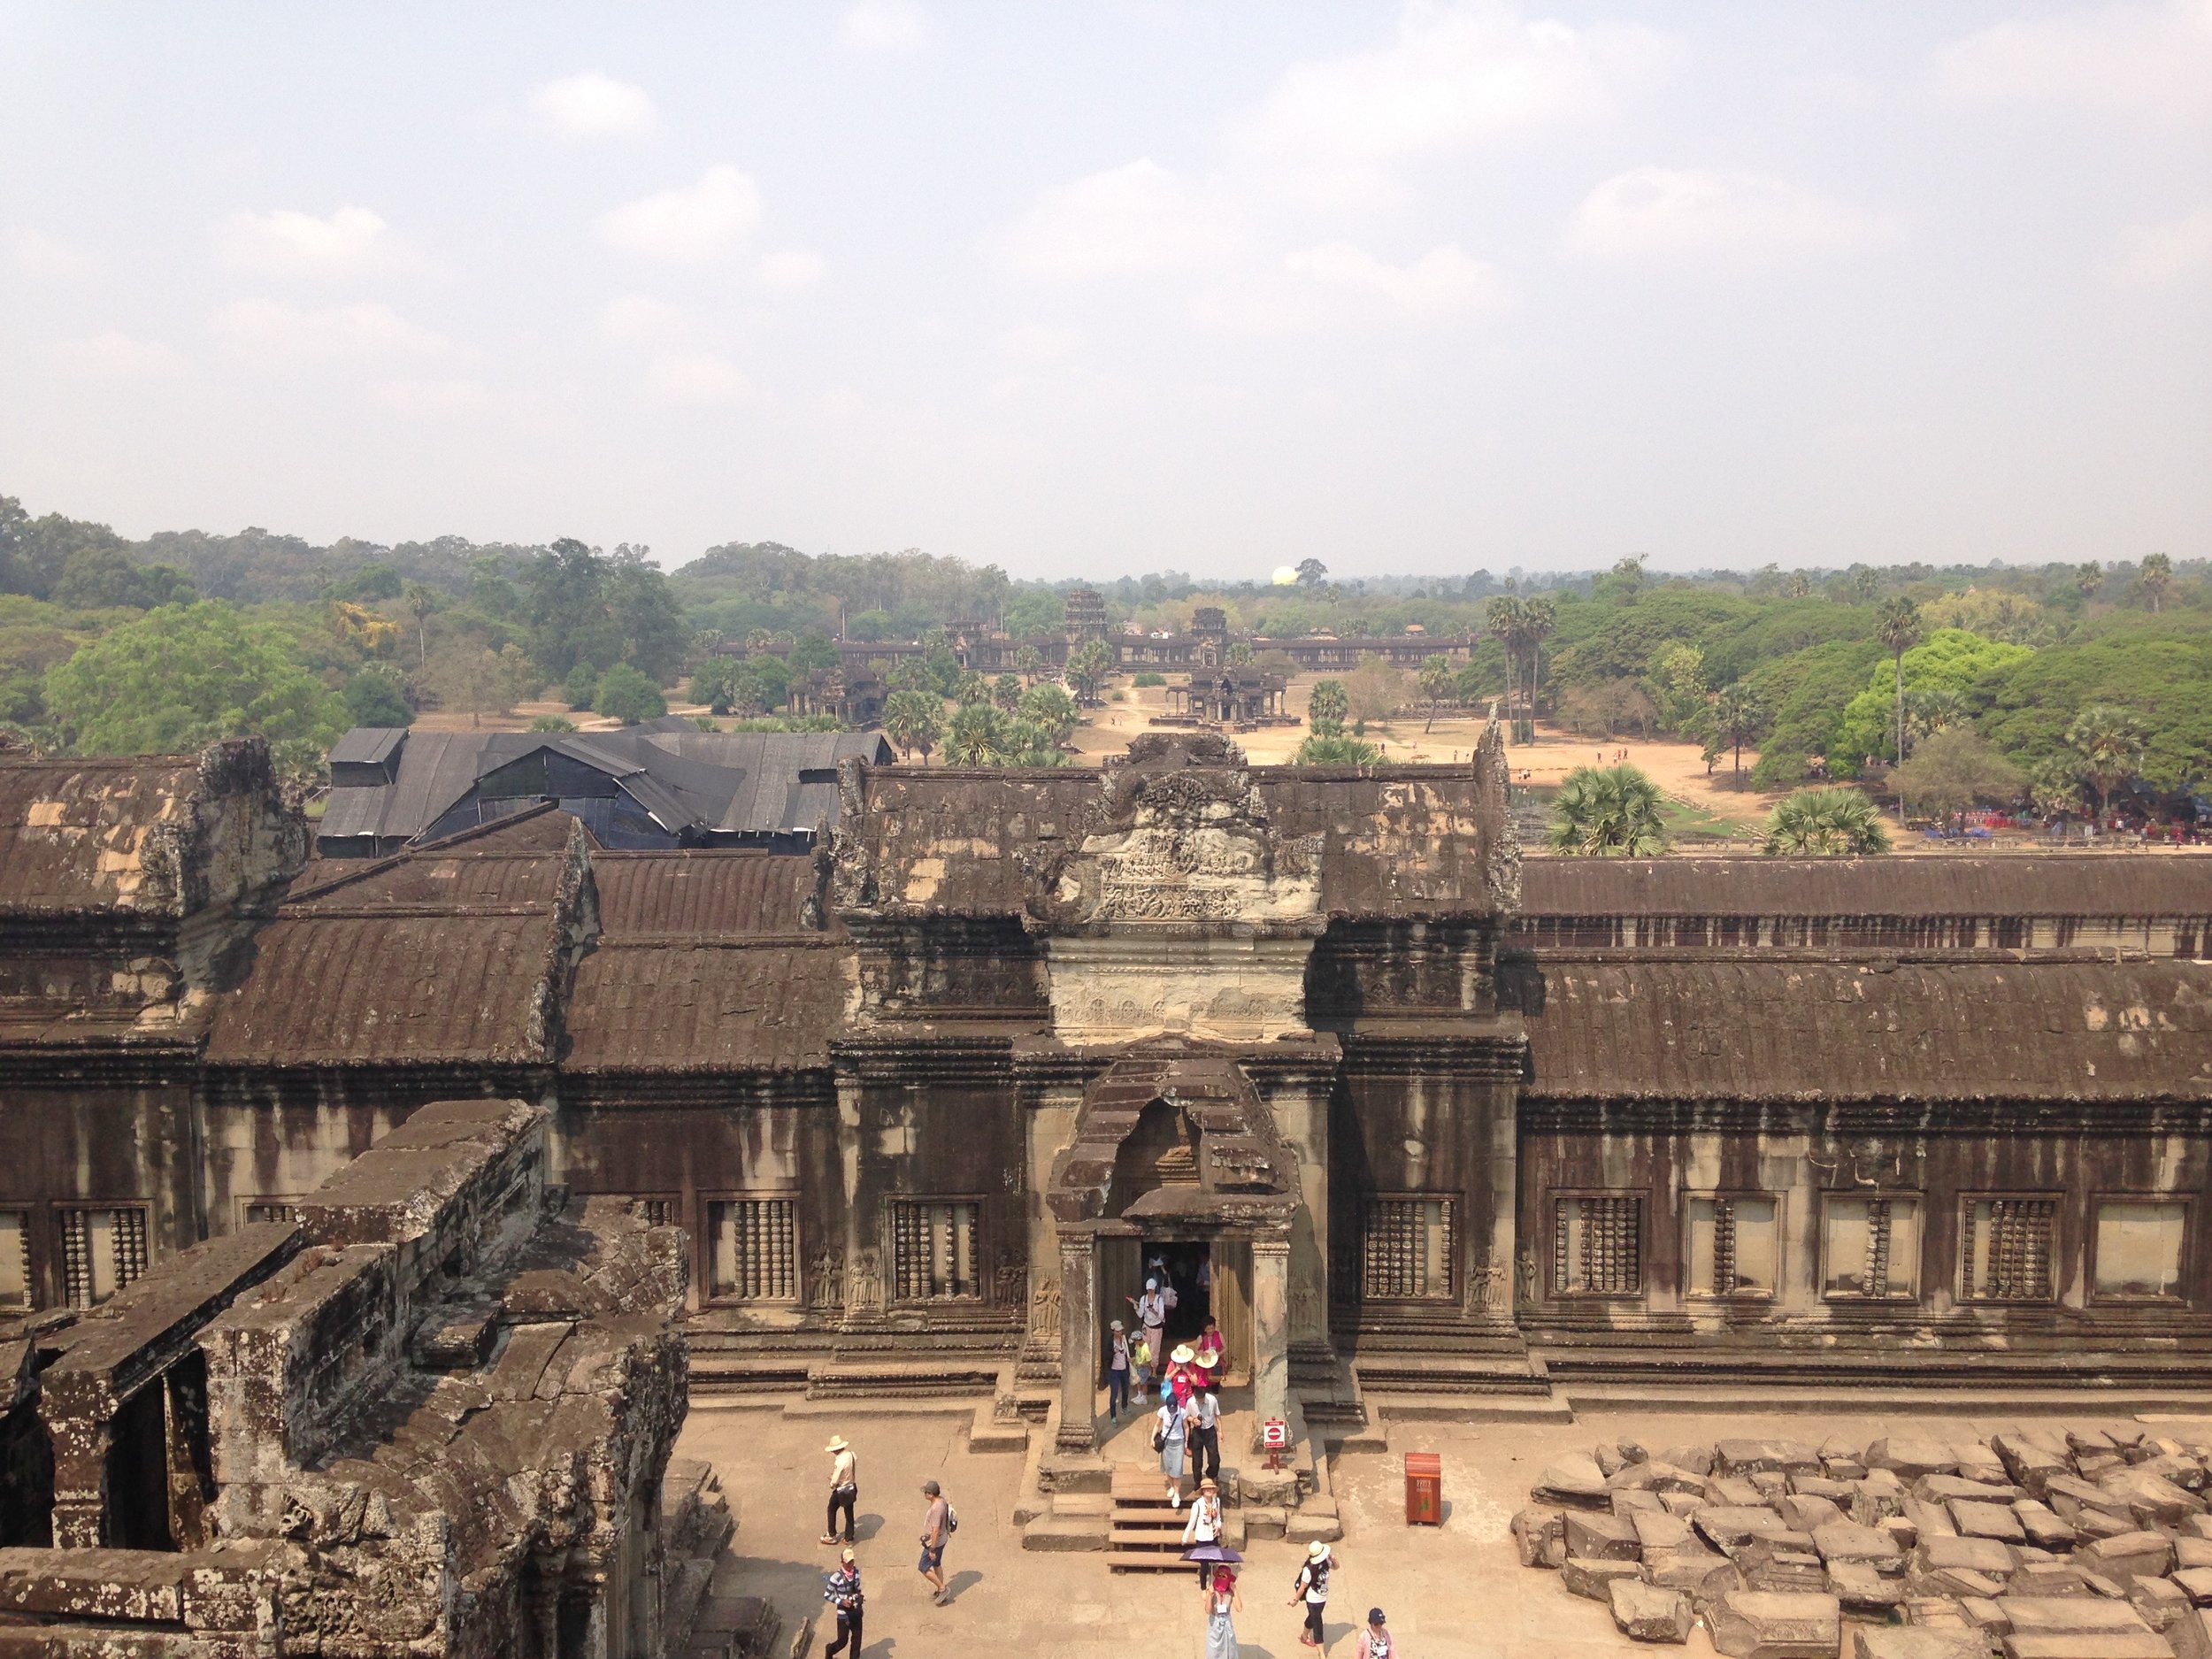 Angkor Wat. Impossible to convey the scale of it